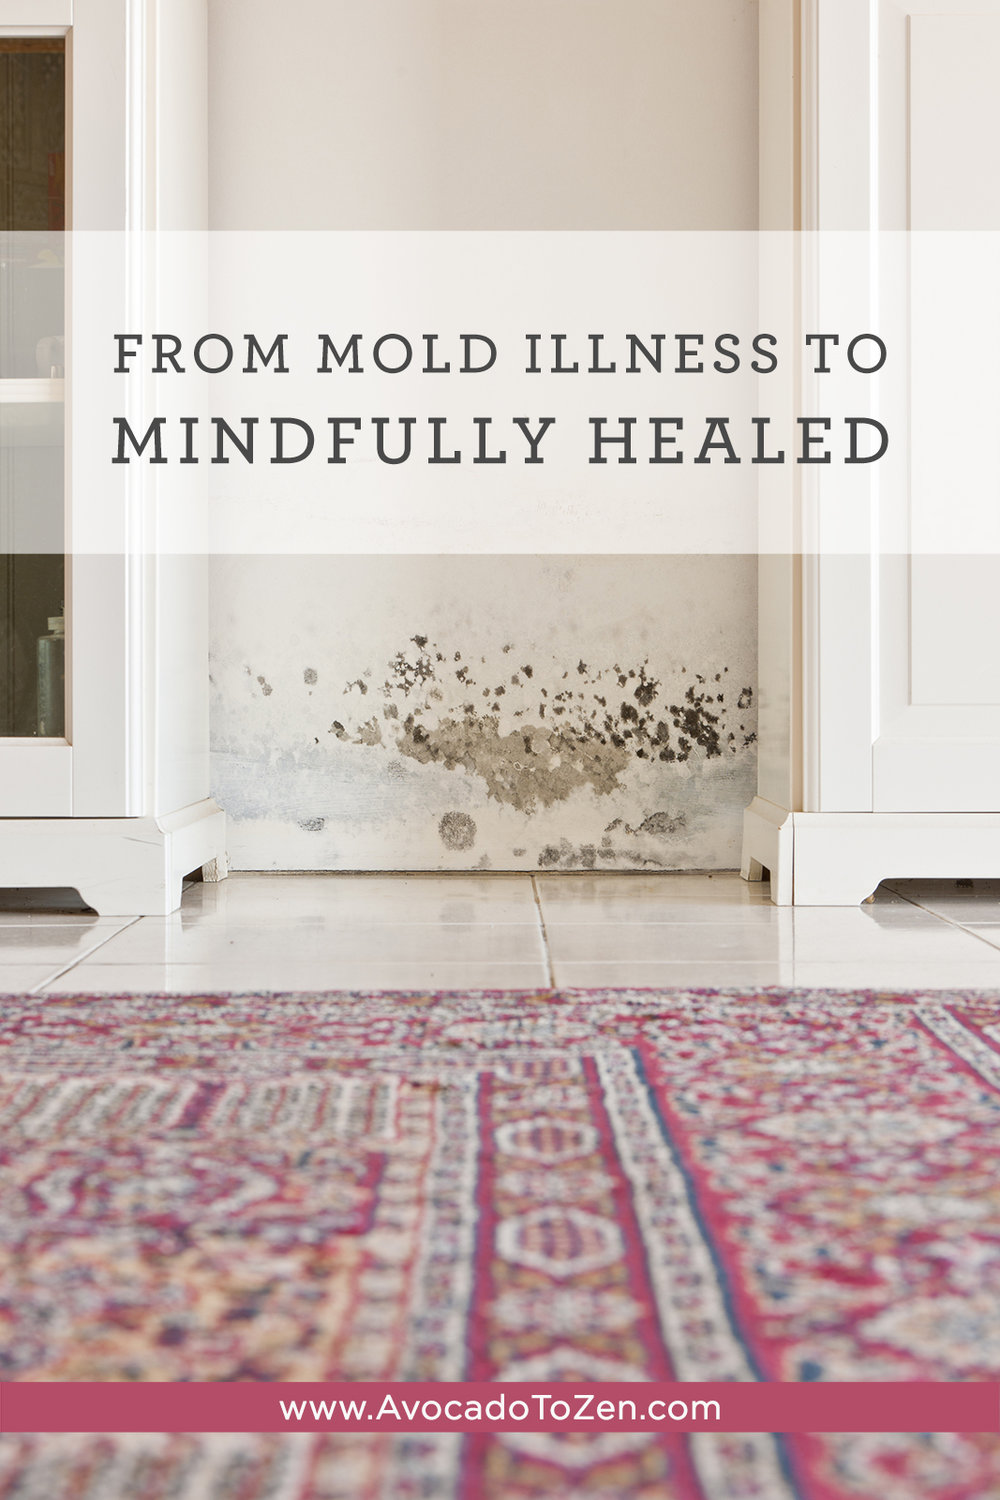 mold illness to mindfully healed